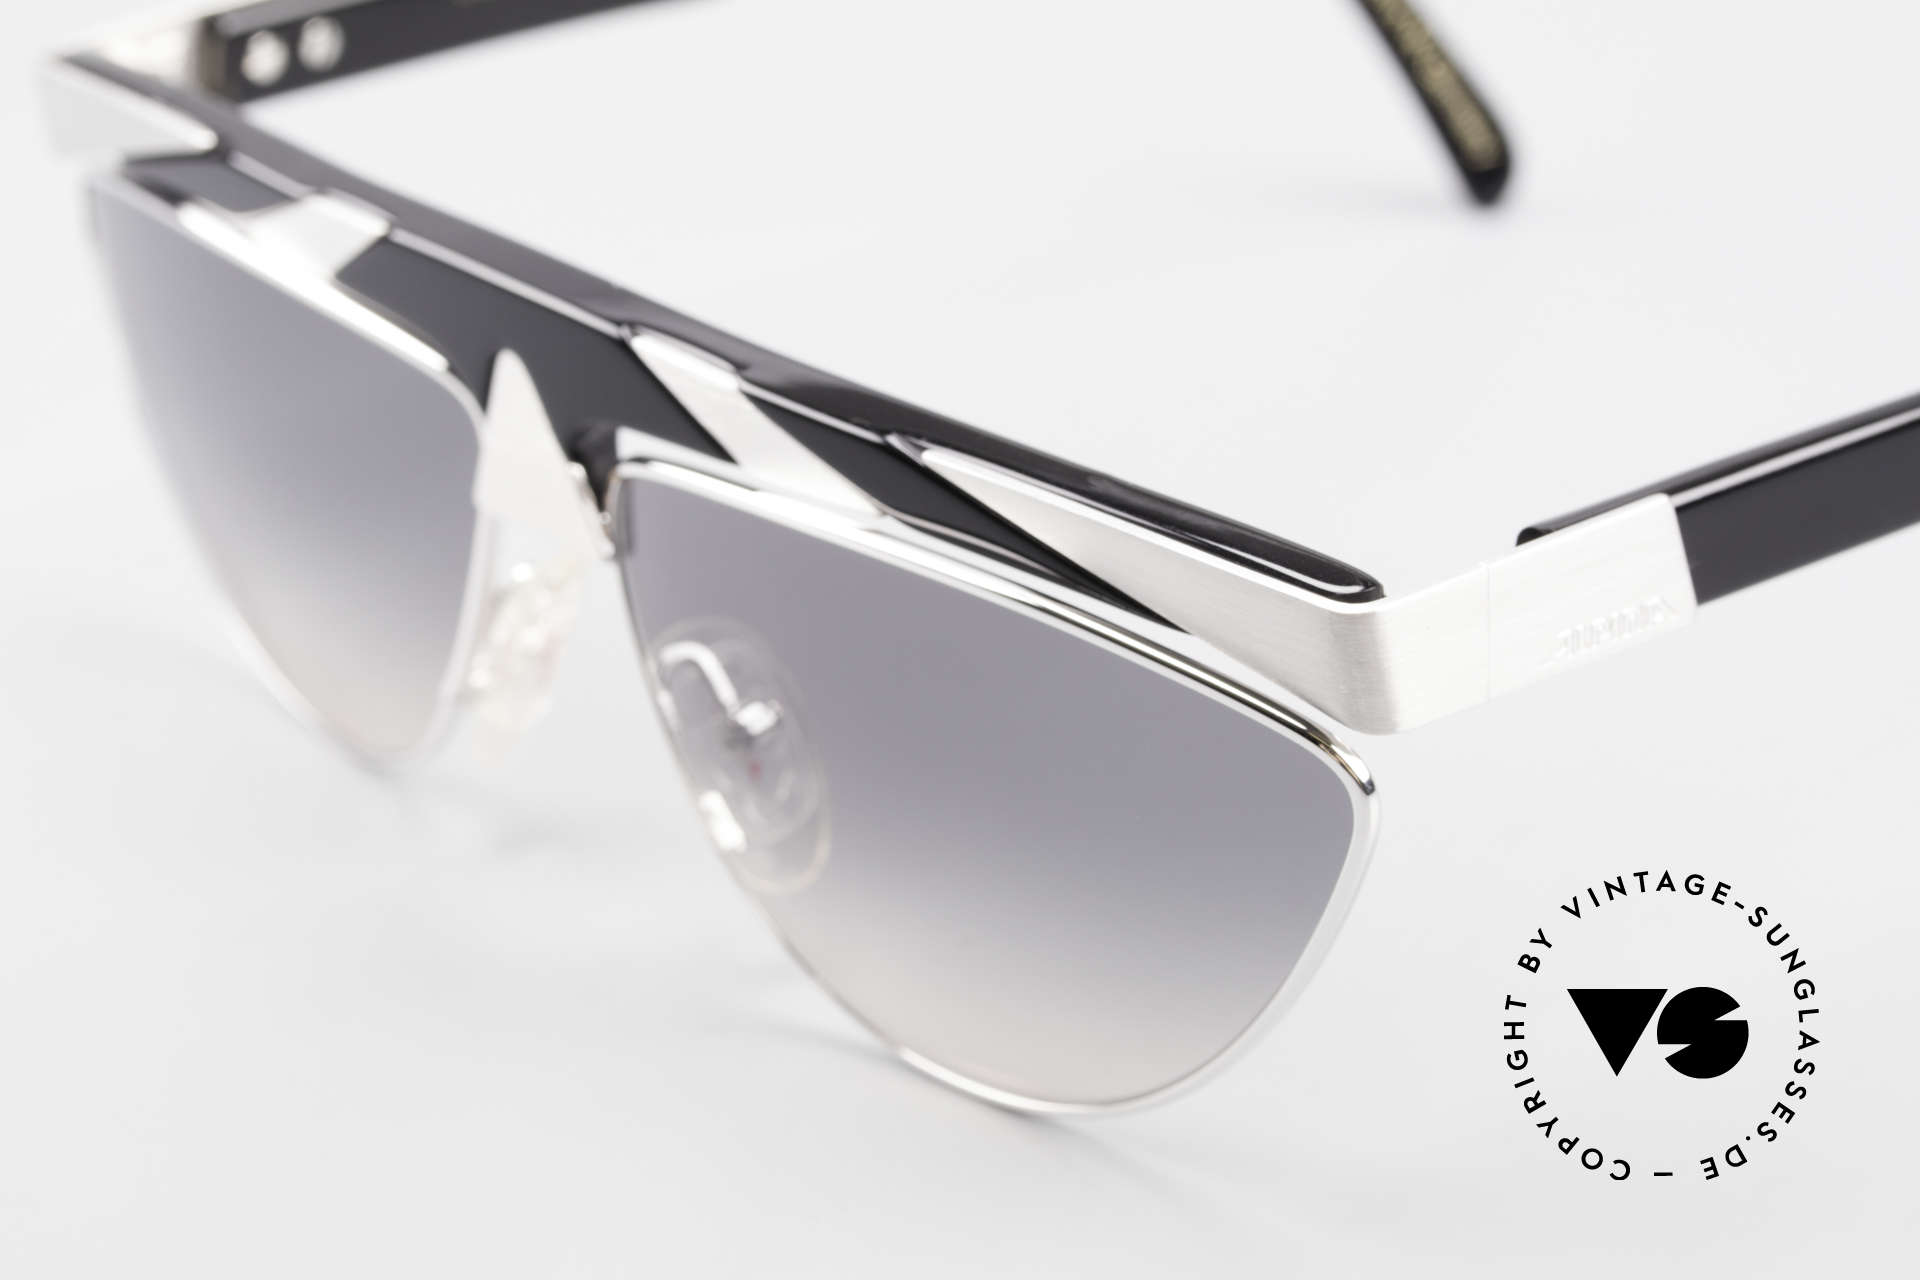 Alpina G85 Genesis Project 80's Shades, top notch quality (with silver-plated metal appliqué), Made for Men and Women